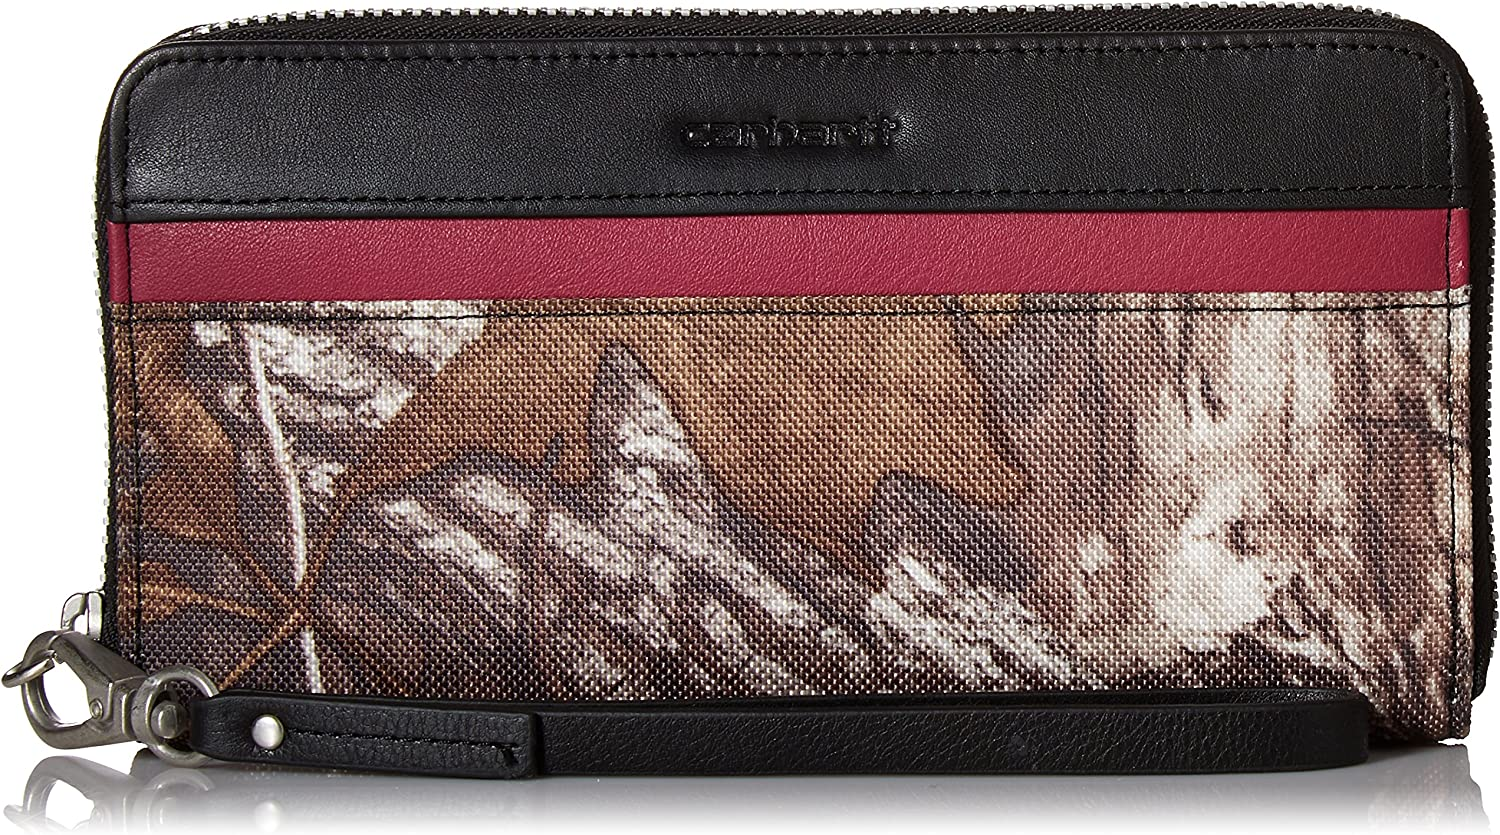 Carhartt Women's Realtree Zip Clutch